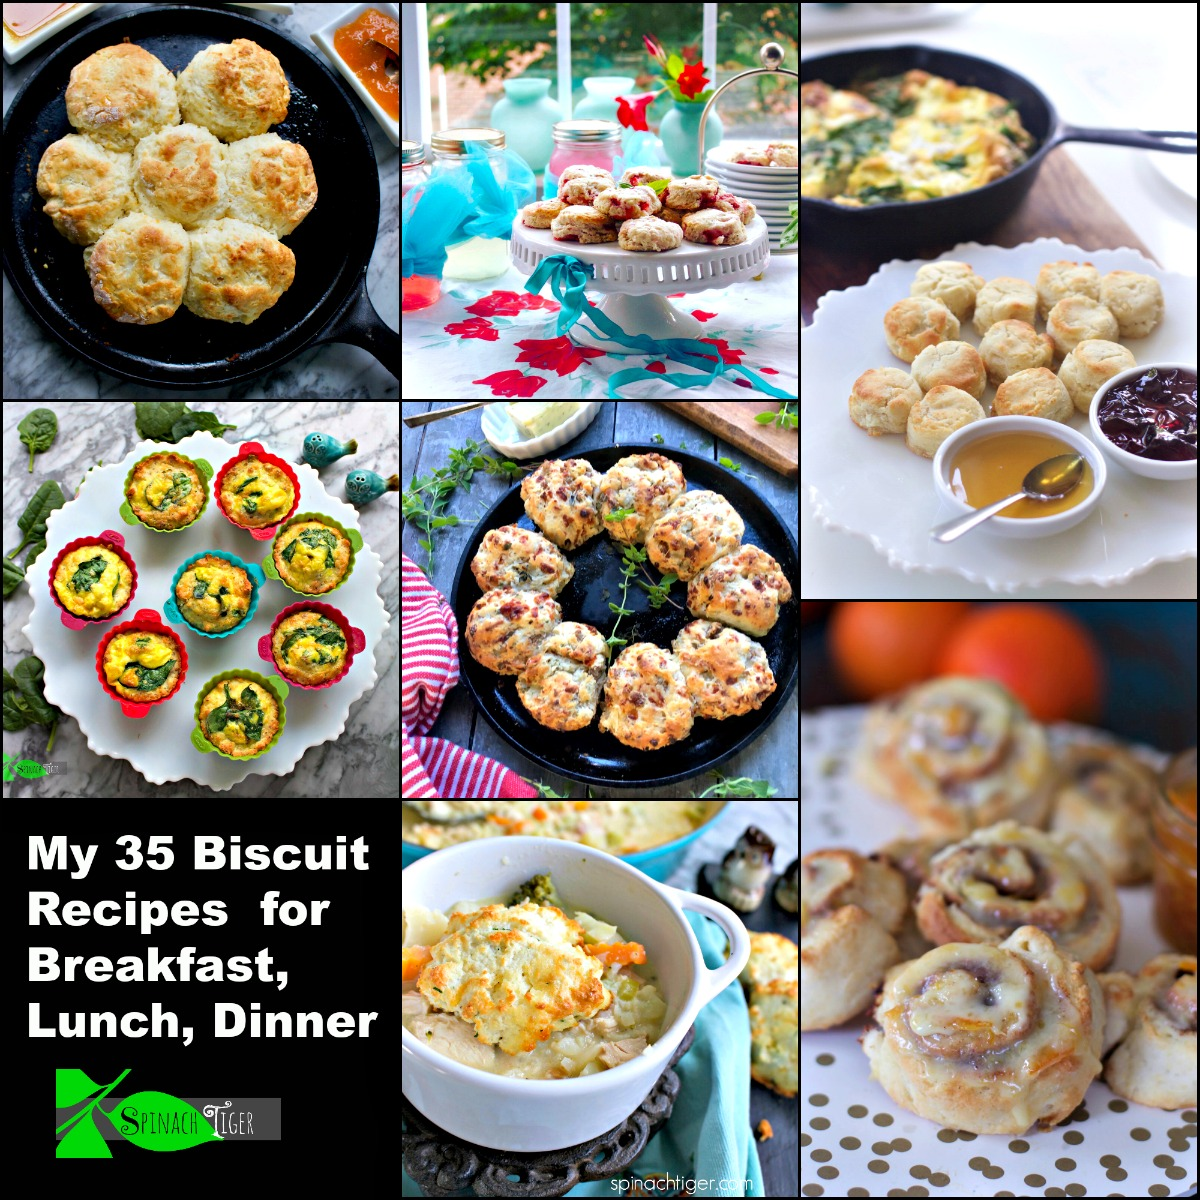 Southern Biscuit Recipes from Spinach Tiger